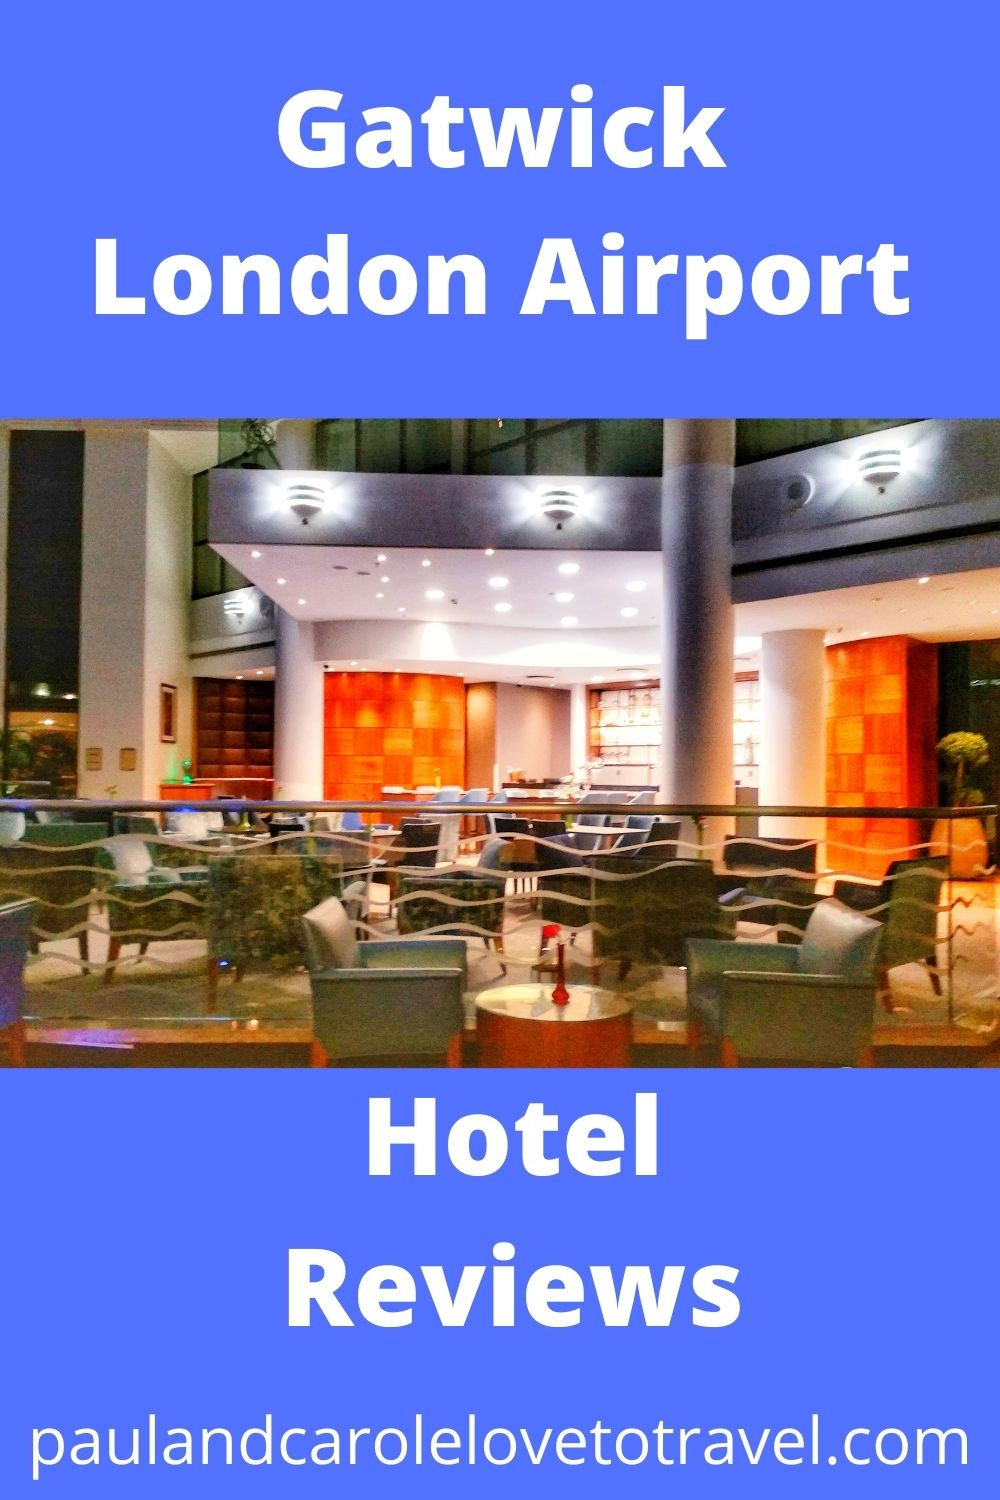 Gatwick Airport London Hotel Reviews Find out some hotel options for a pre or post holiday stay. #Gatwick #airport #hotels #London